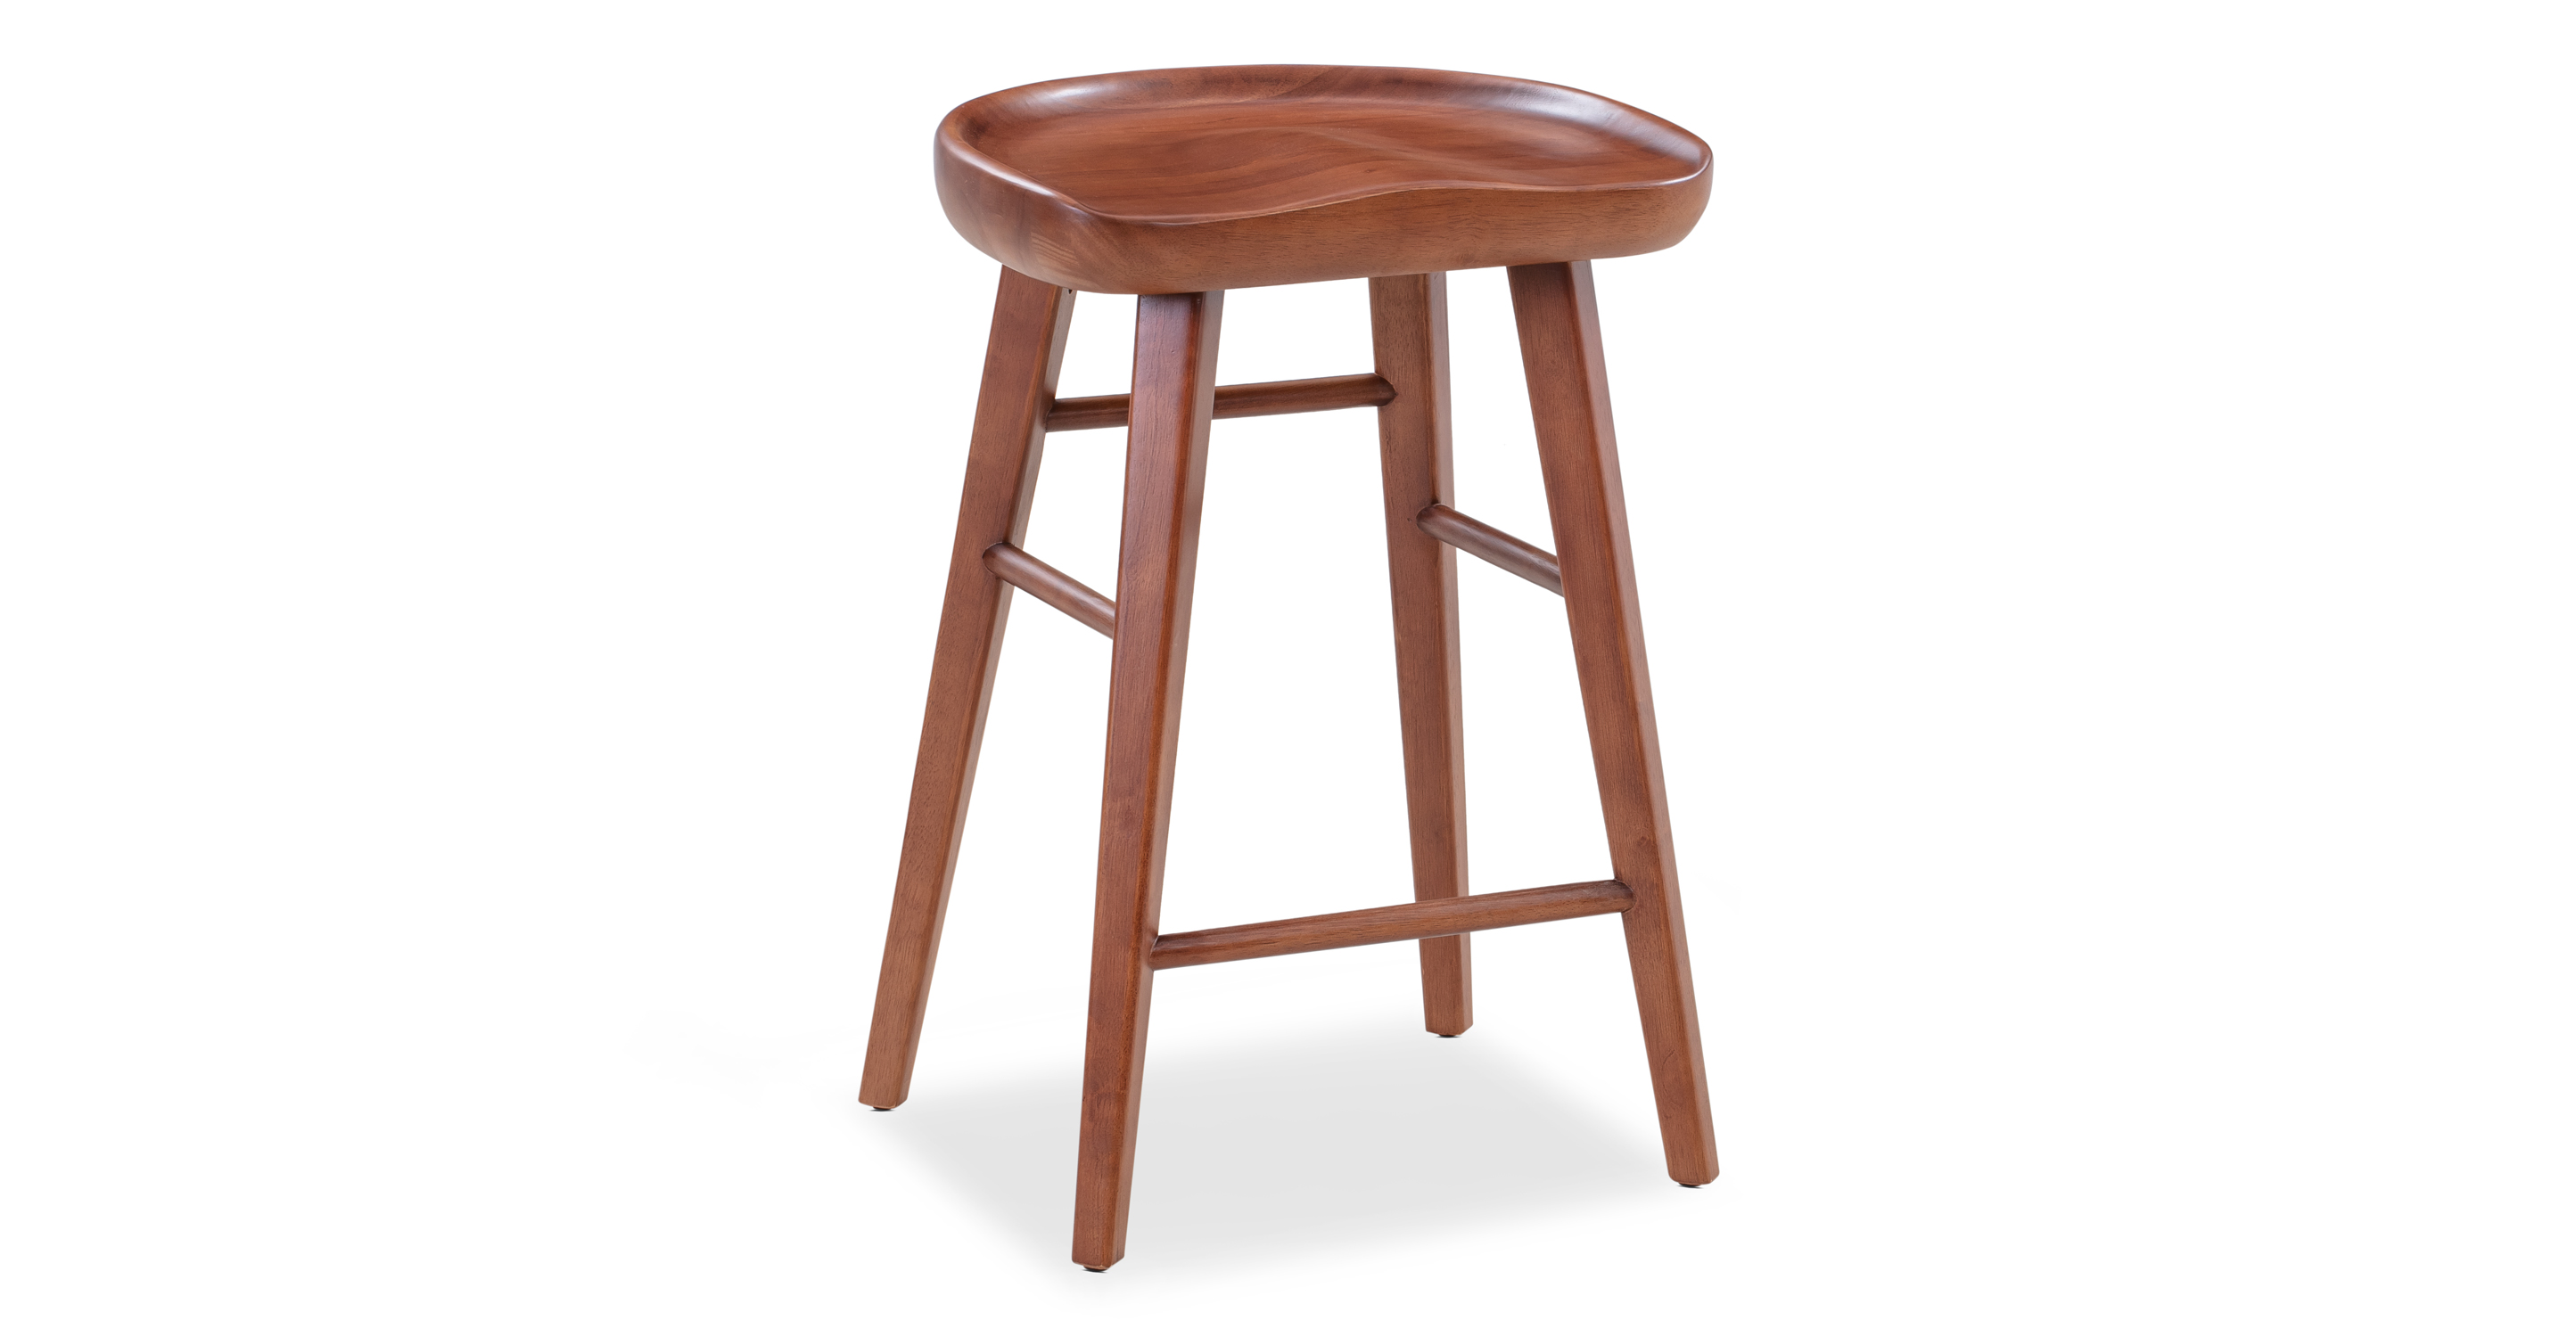 "Swell 24"" Round Counter Stool, Walnut"